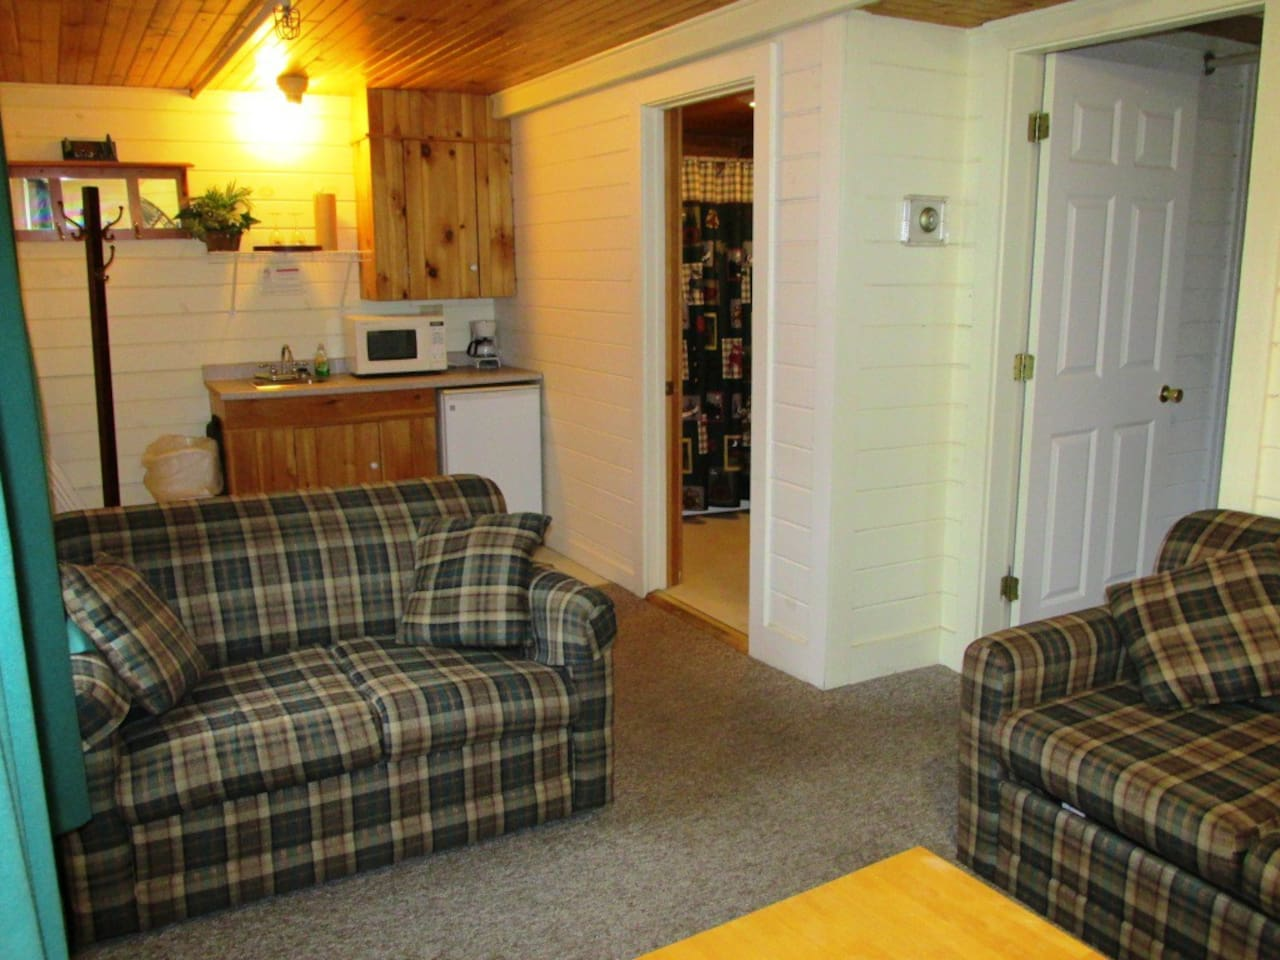 This suite has a kitchenette with refrigerator, microwave, sink and coffee maker.